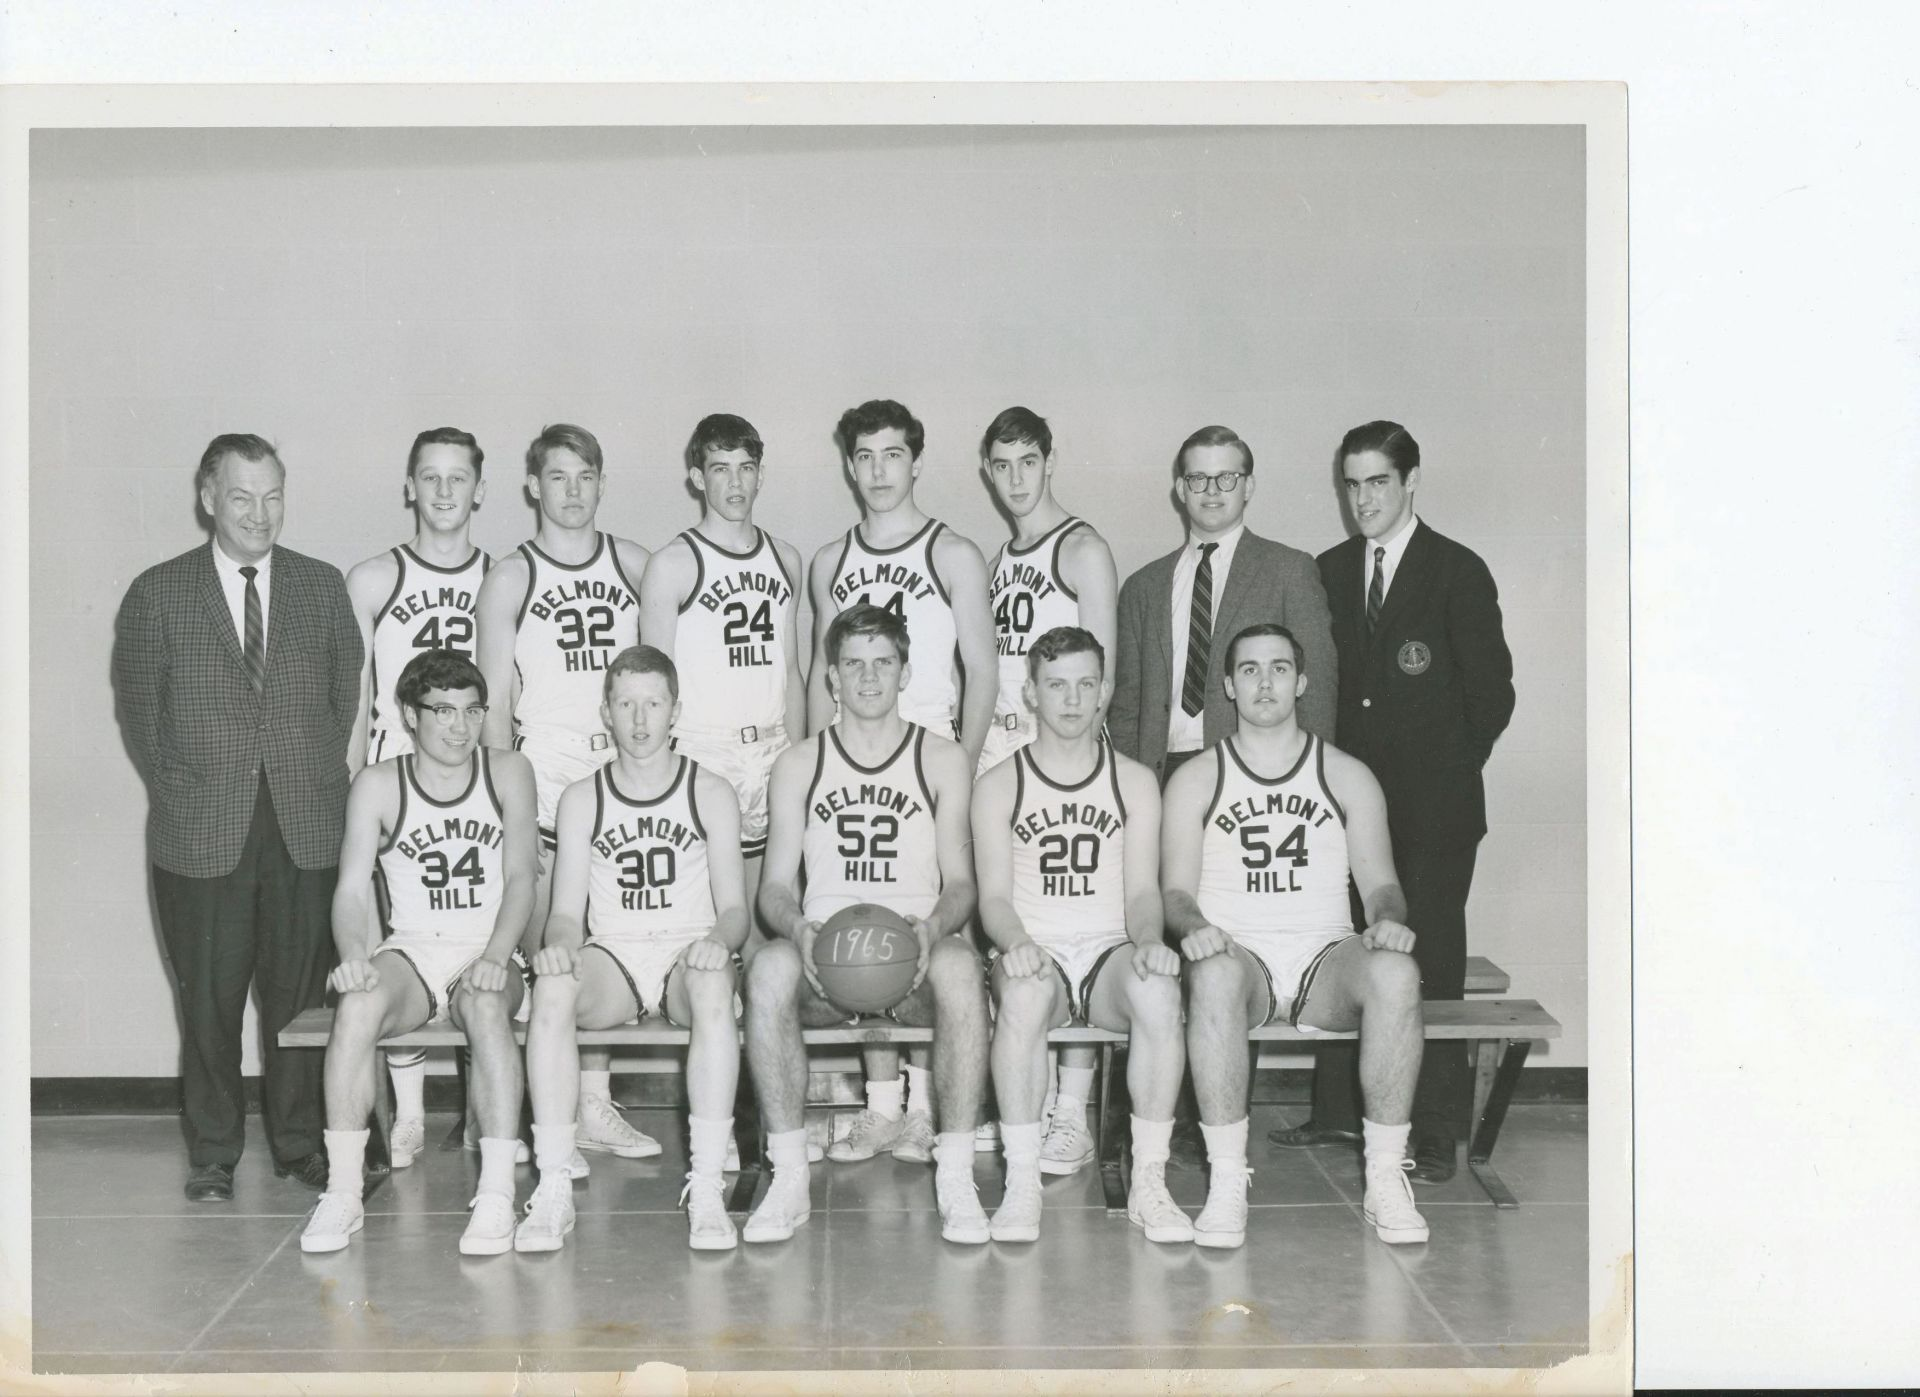 First Row: Reed, Amon, R. Goldkamp, Beal, Poulin Second Row: Mr. Croke, Bas, J. Fisher, R. Nelson, Karelis, F. Lamson, Bolan, Andreson, Carr, Warren